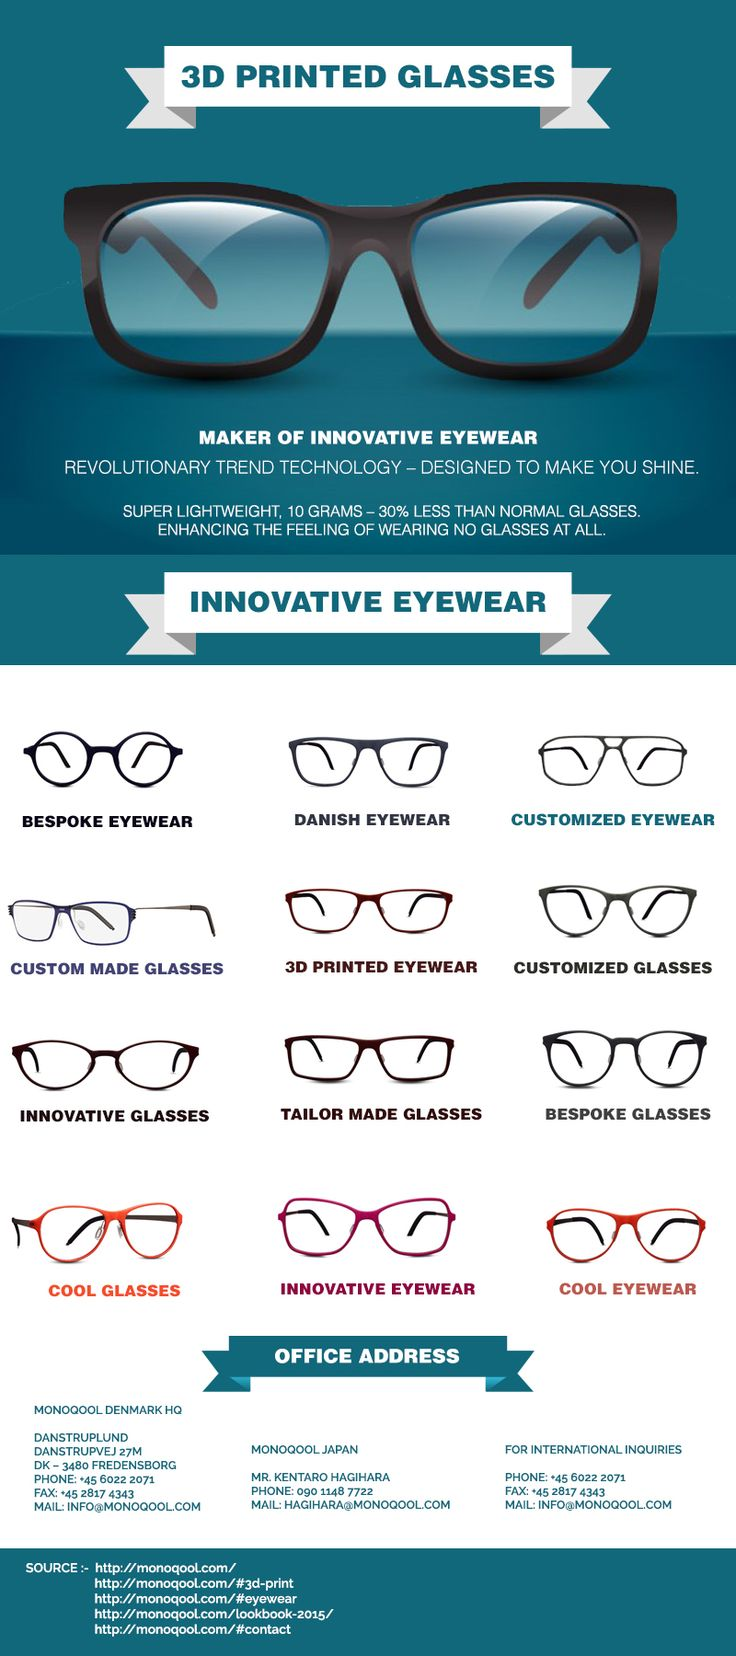 We all know that cool eyewear is comfortable for eye and their vision. People can try some more products similar to that like innovative glasses, innovative eyewear, cool glasses, cool eyewear, Danish eyewear, Danish glasses, customized eyewear, 3D printed glasses, 3D printed eyewear, tailor made glasses and many more at suitable price.